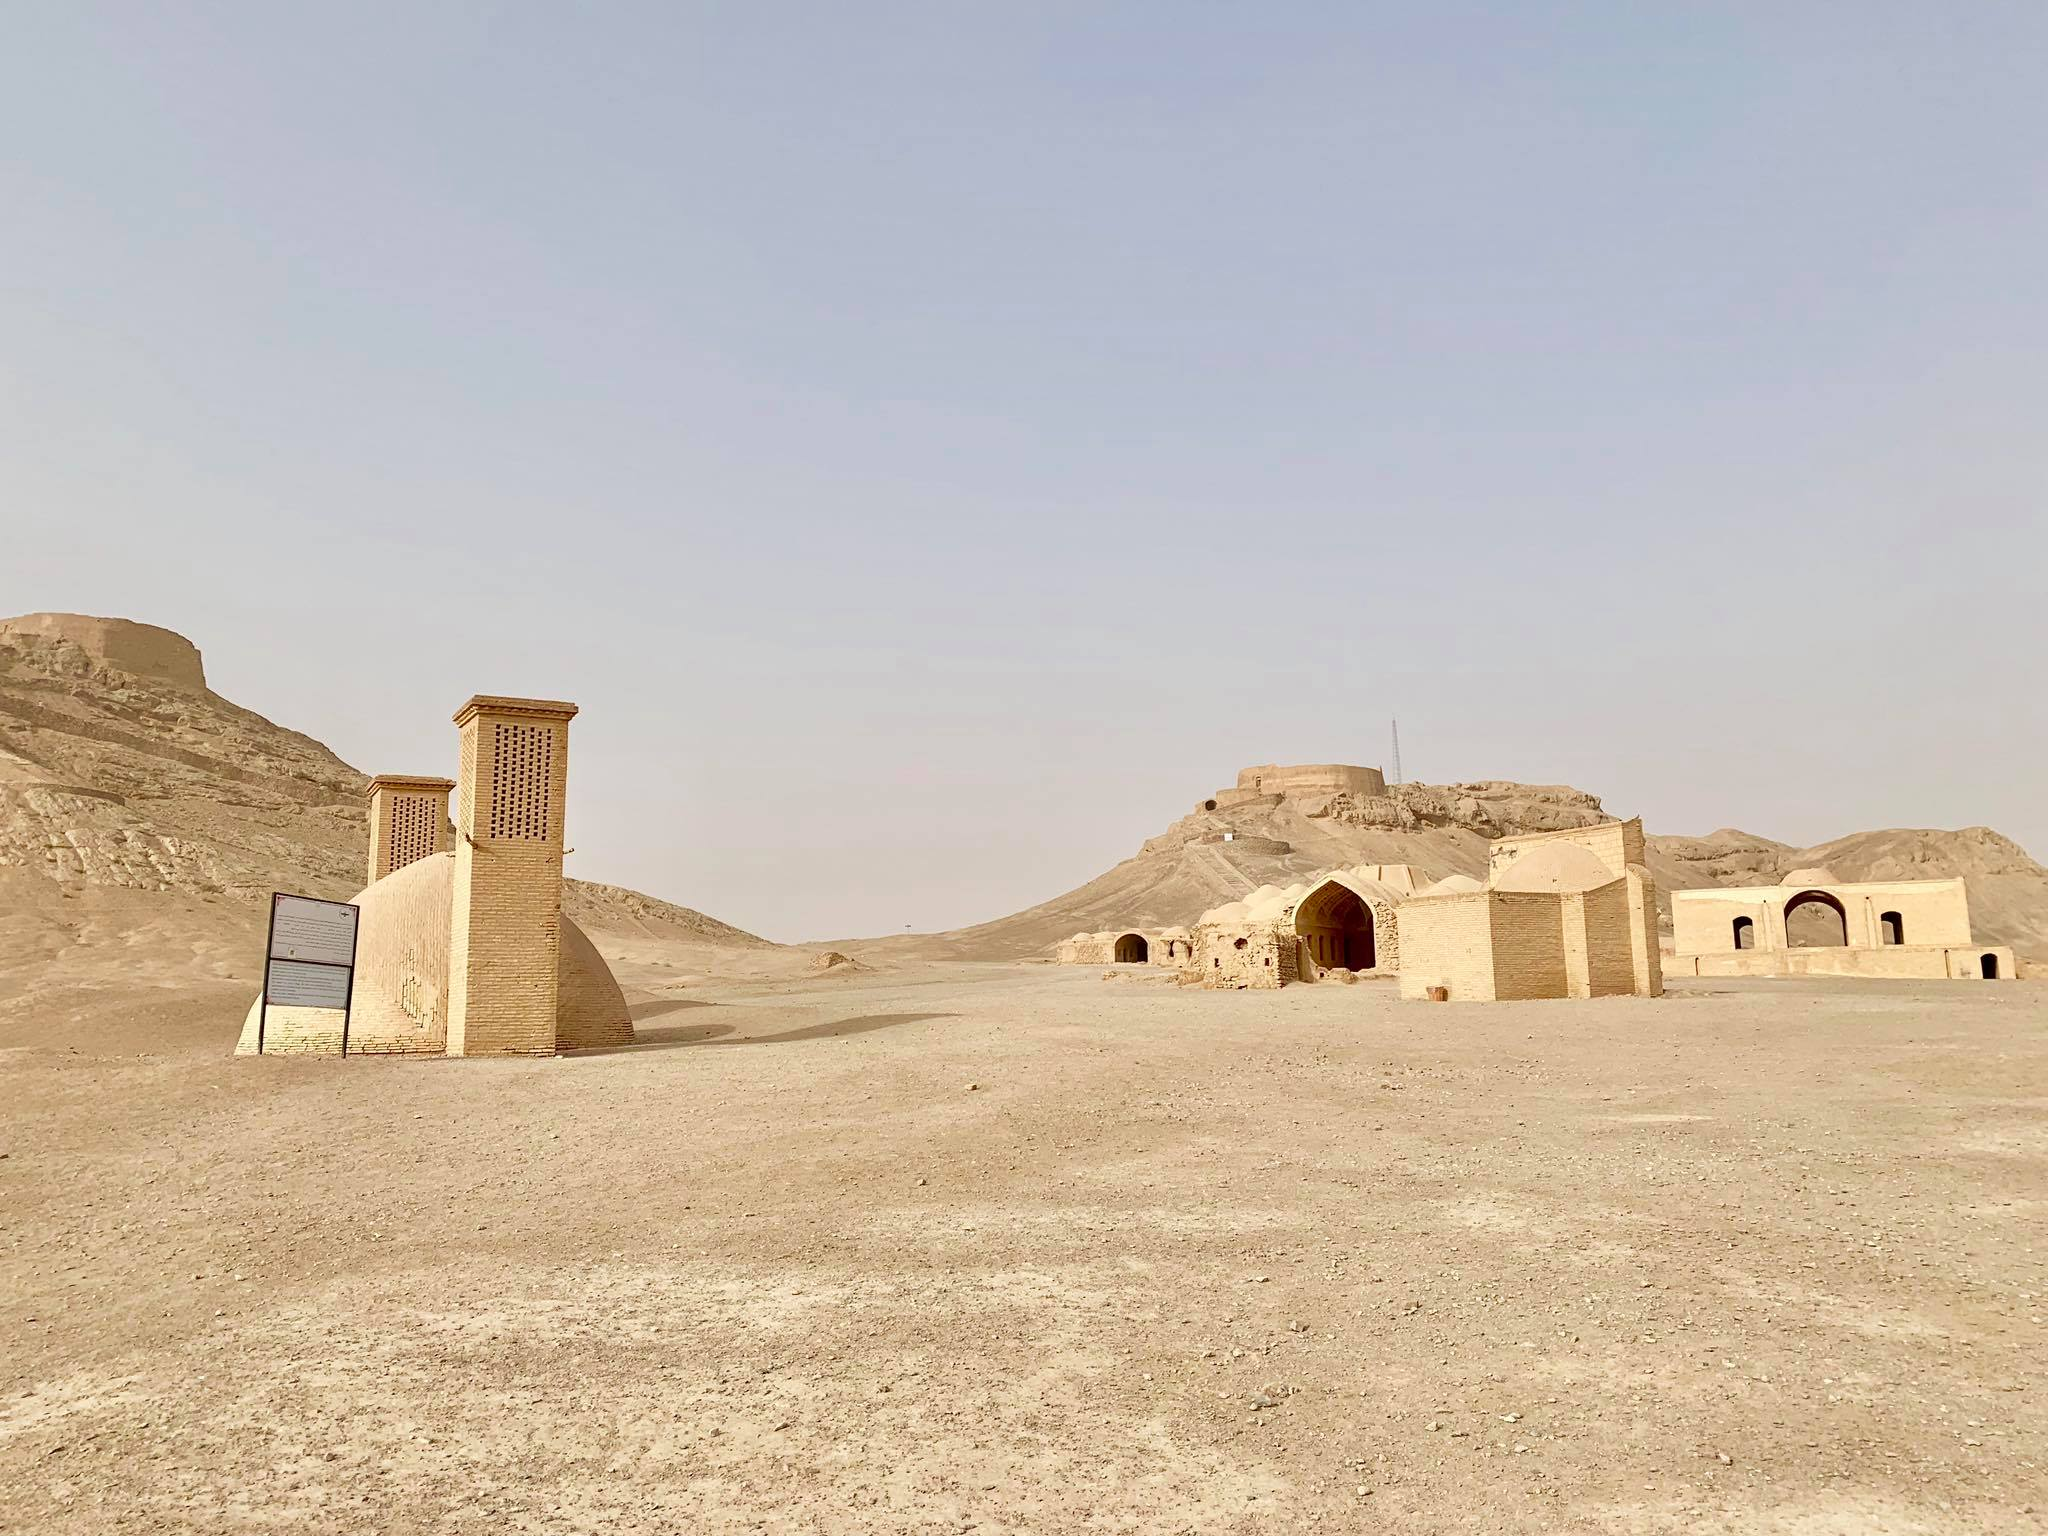 Kach Solo Travels in 2019 YAZD - the desert city in Iran.jpg